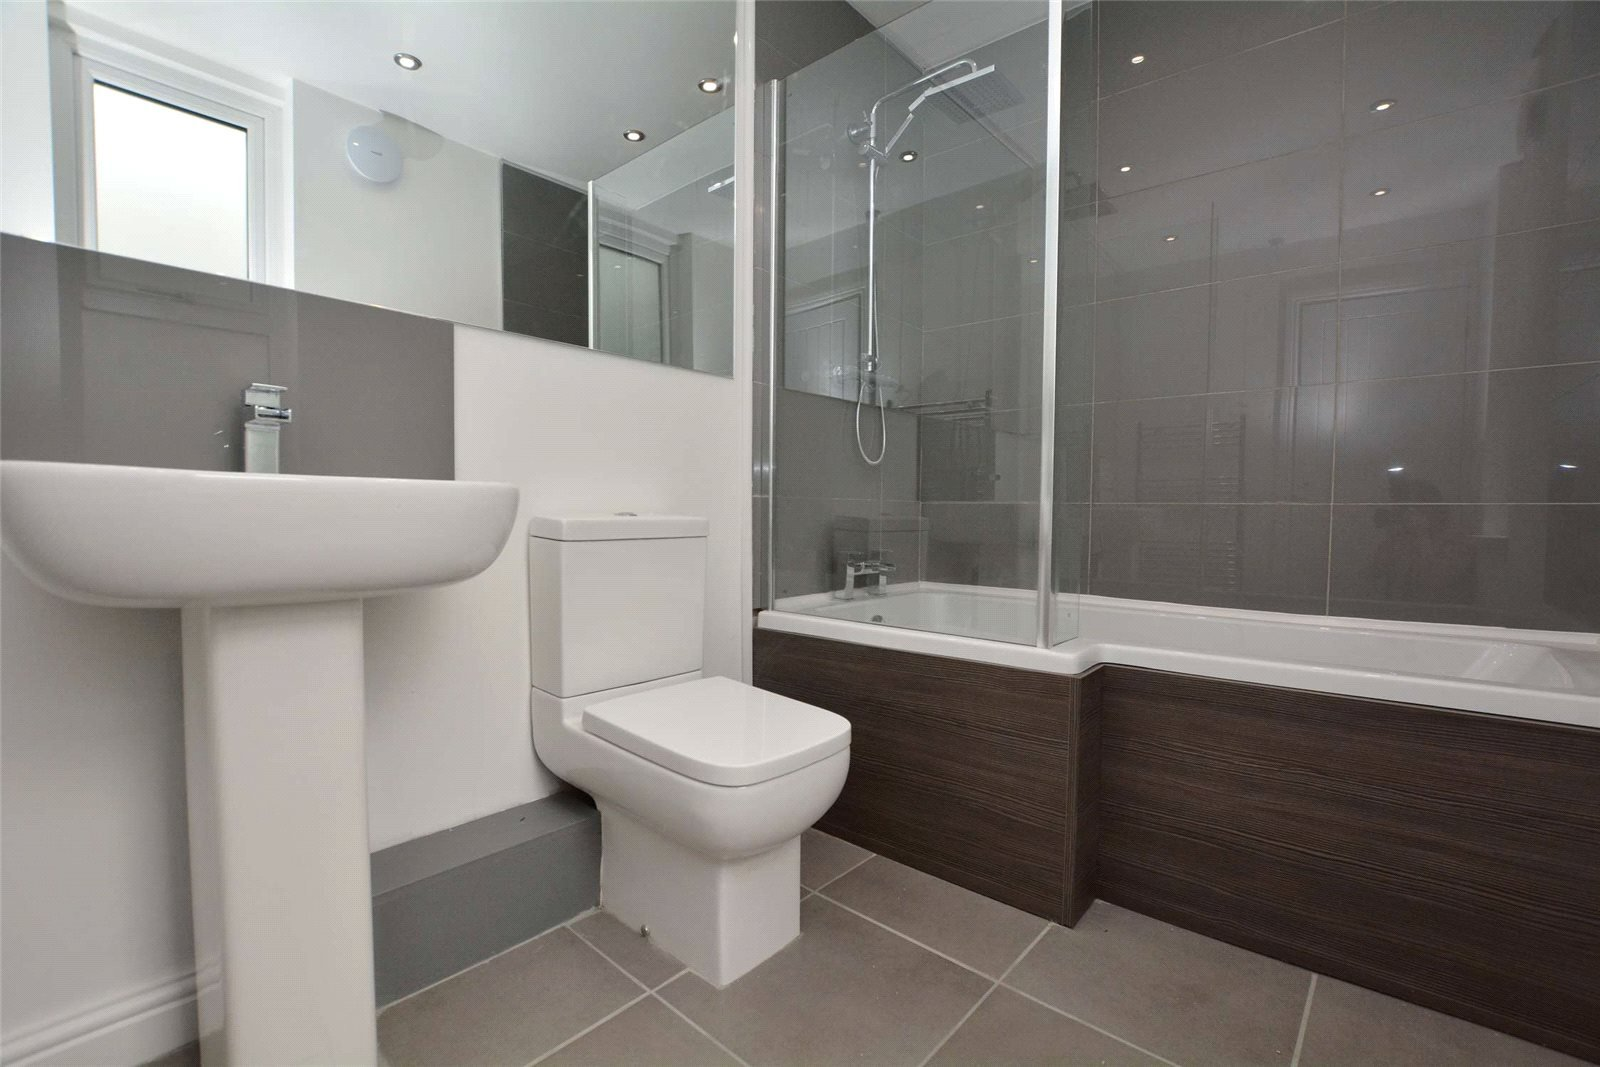 Property for sale in Leeds, interior modern fitted bathroom